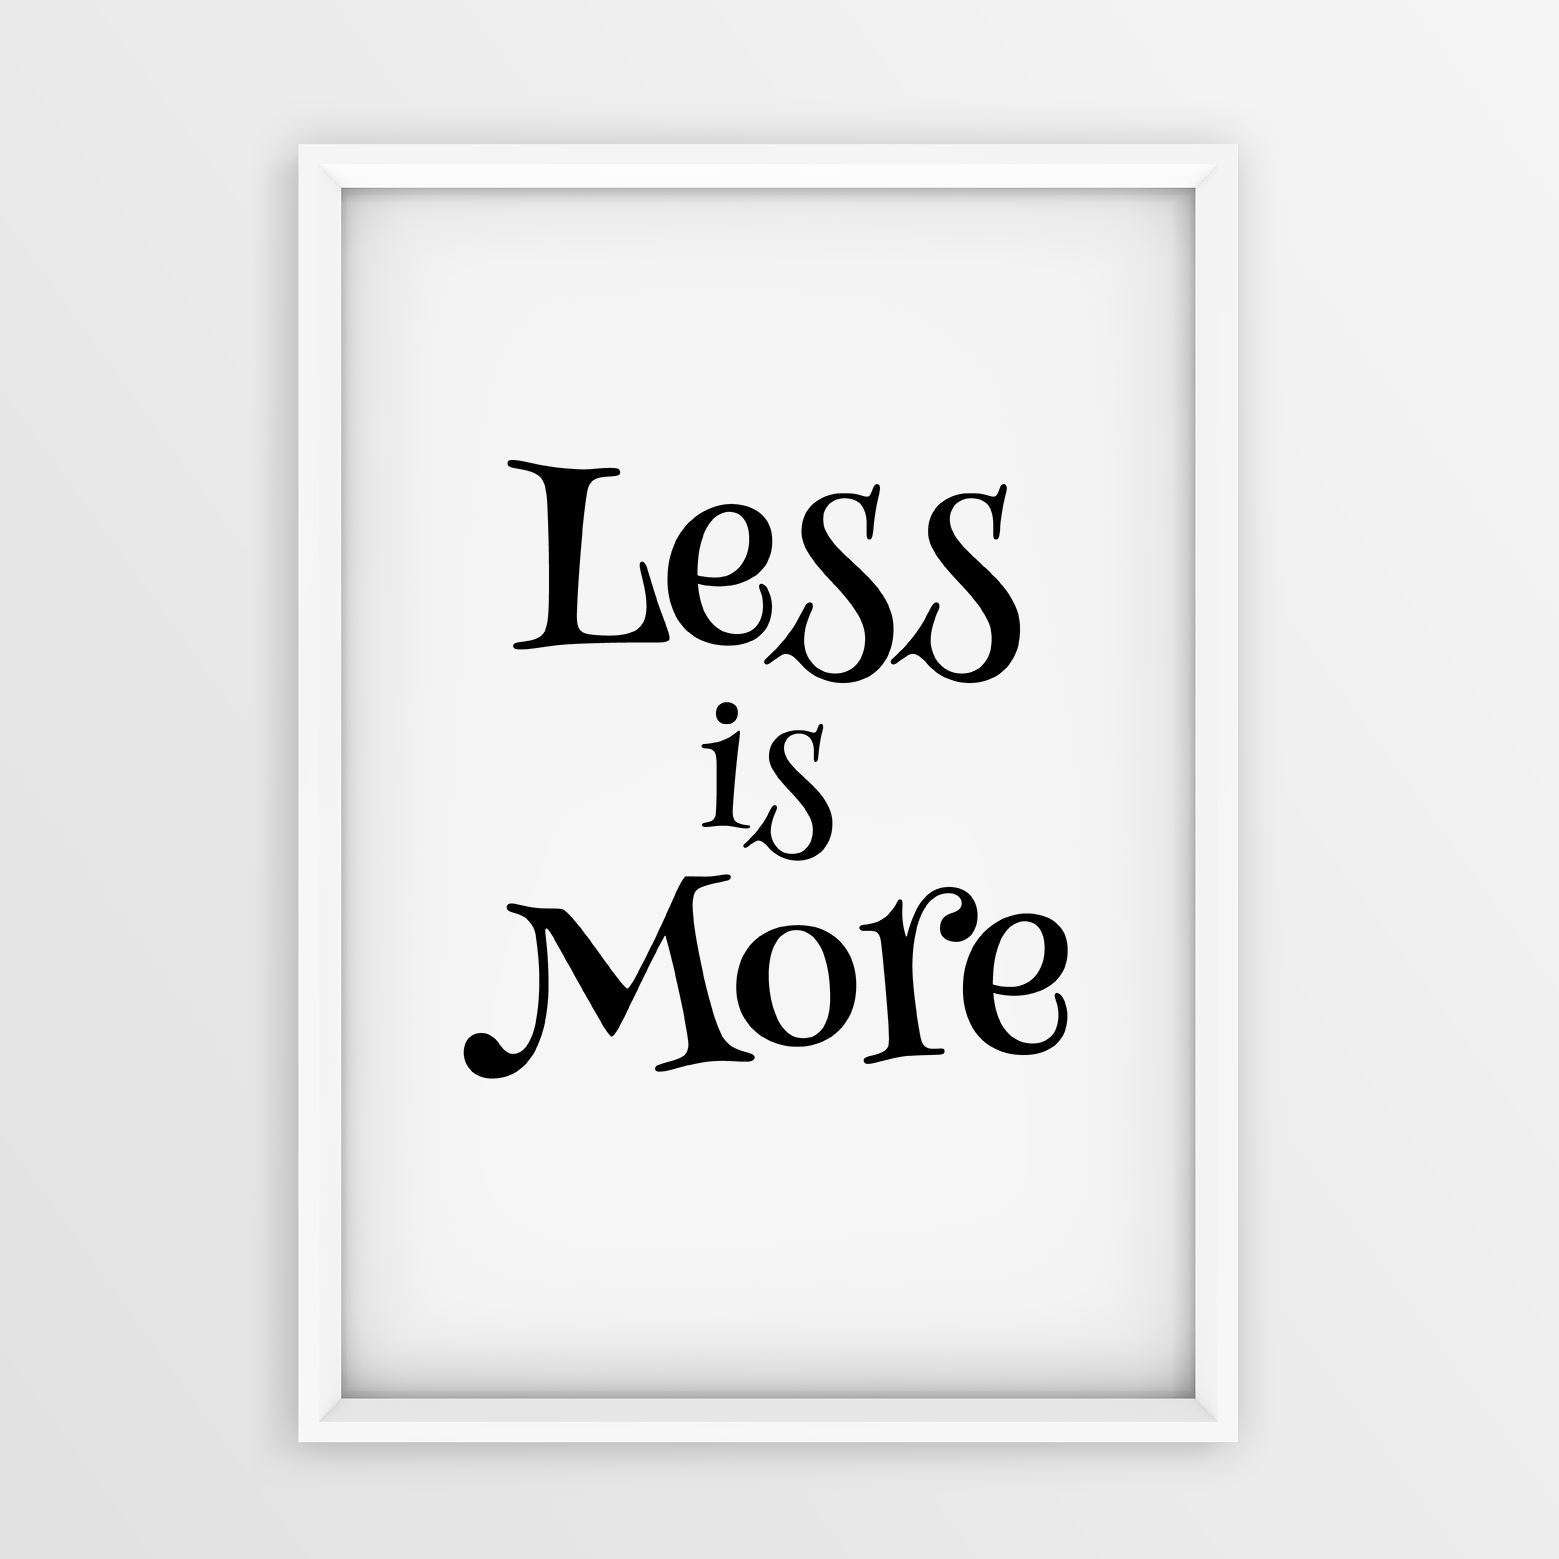 Less Is More Poster Positive Life Inspirational Print A3 A4 Size